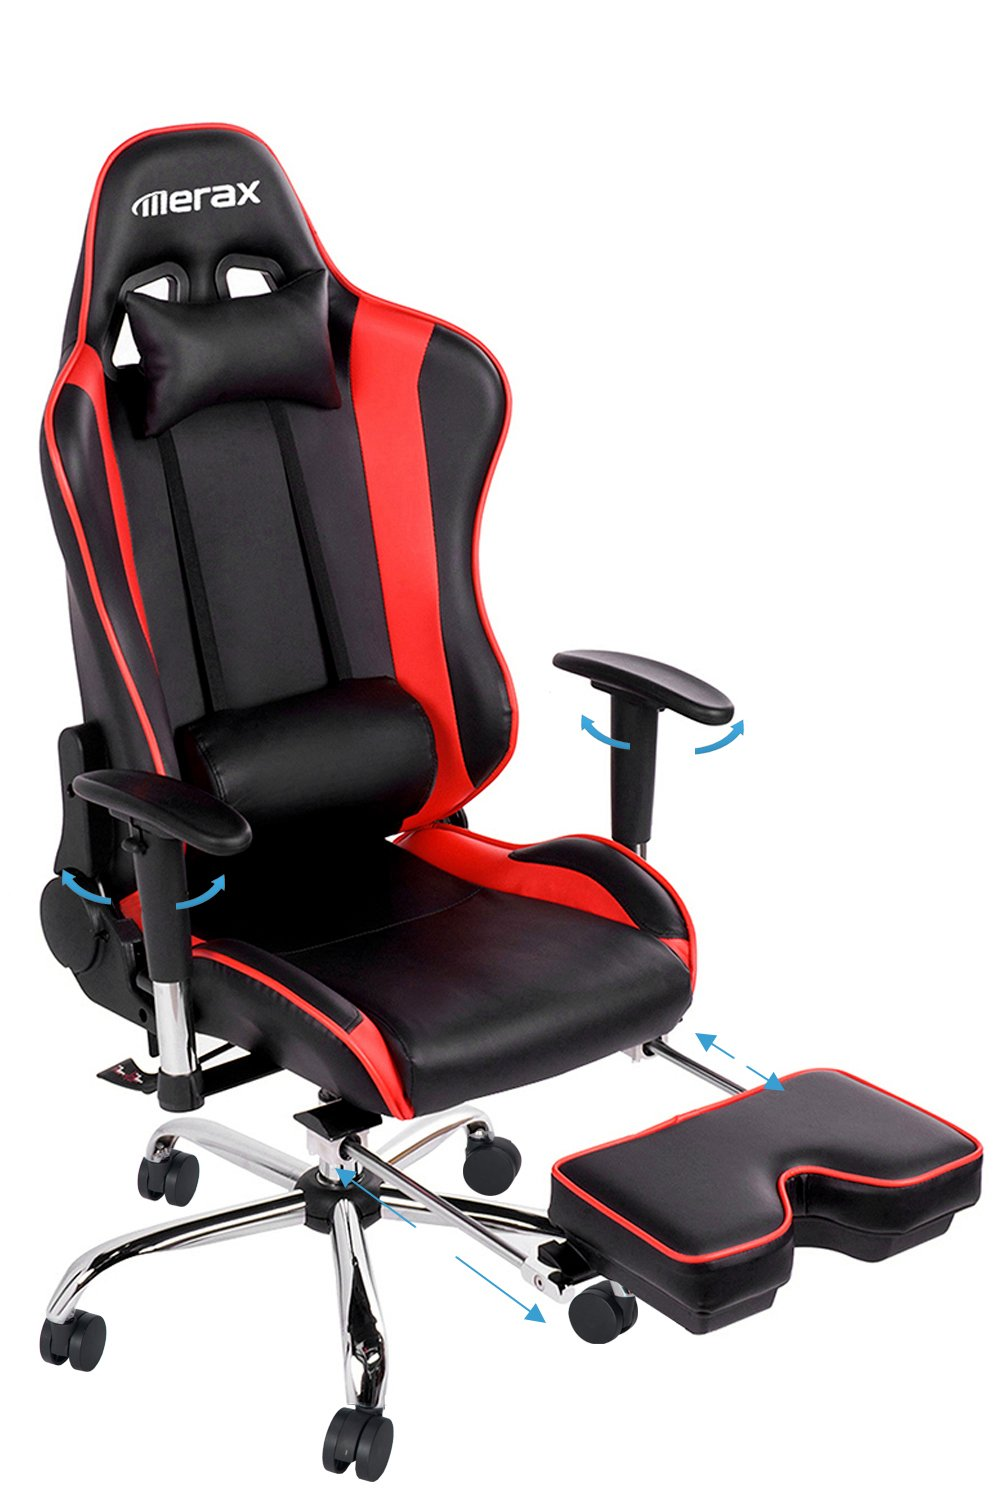 amazoncom merax ergonomic series pu leather office chair racing chair with footrest computer gaming chair recliner swivel tilt rocker and seat height